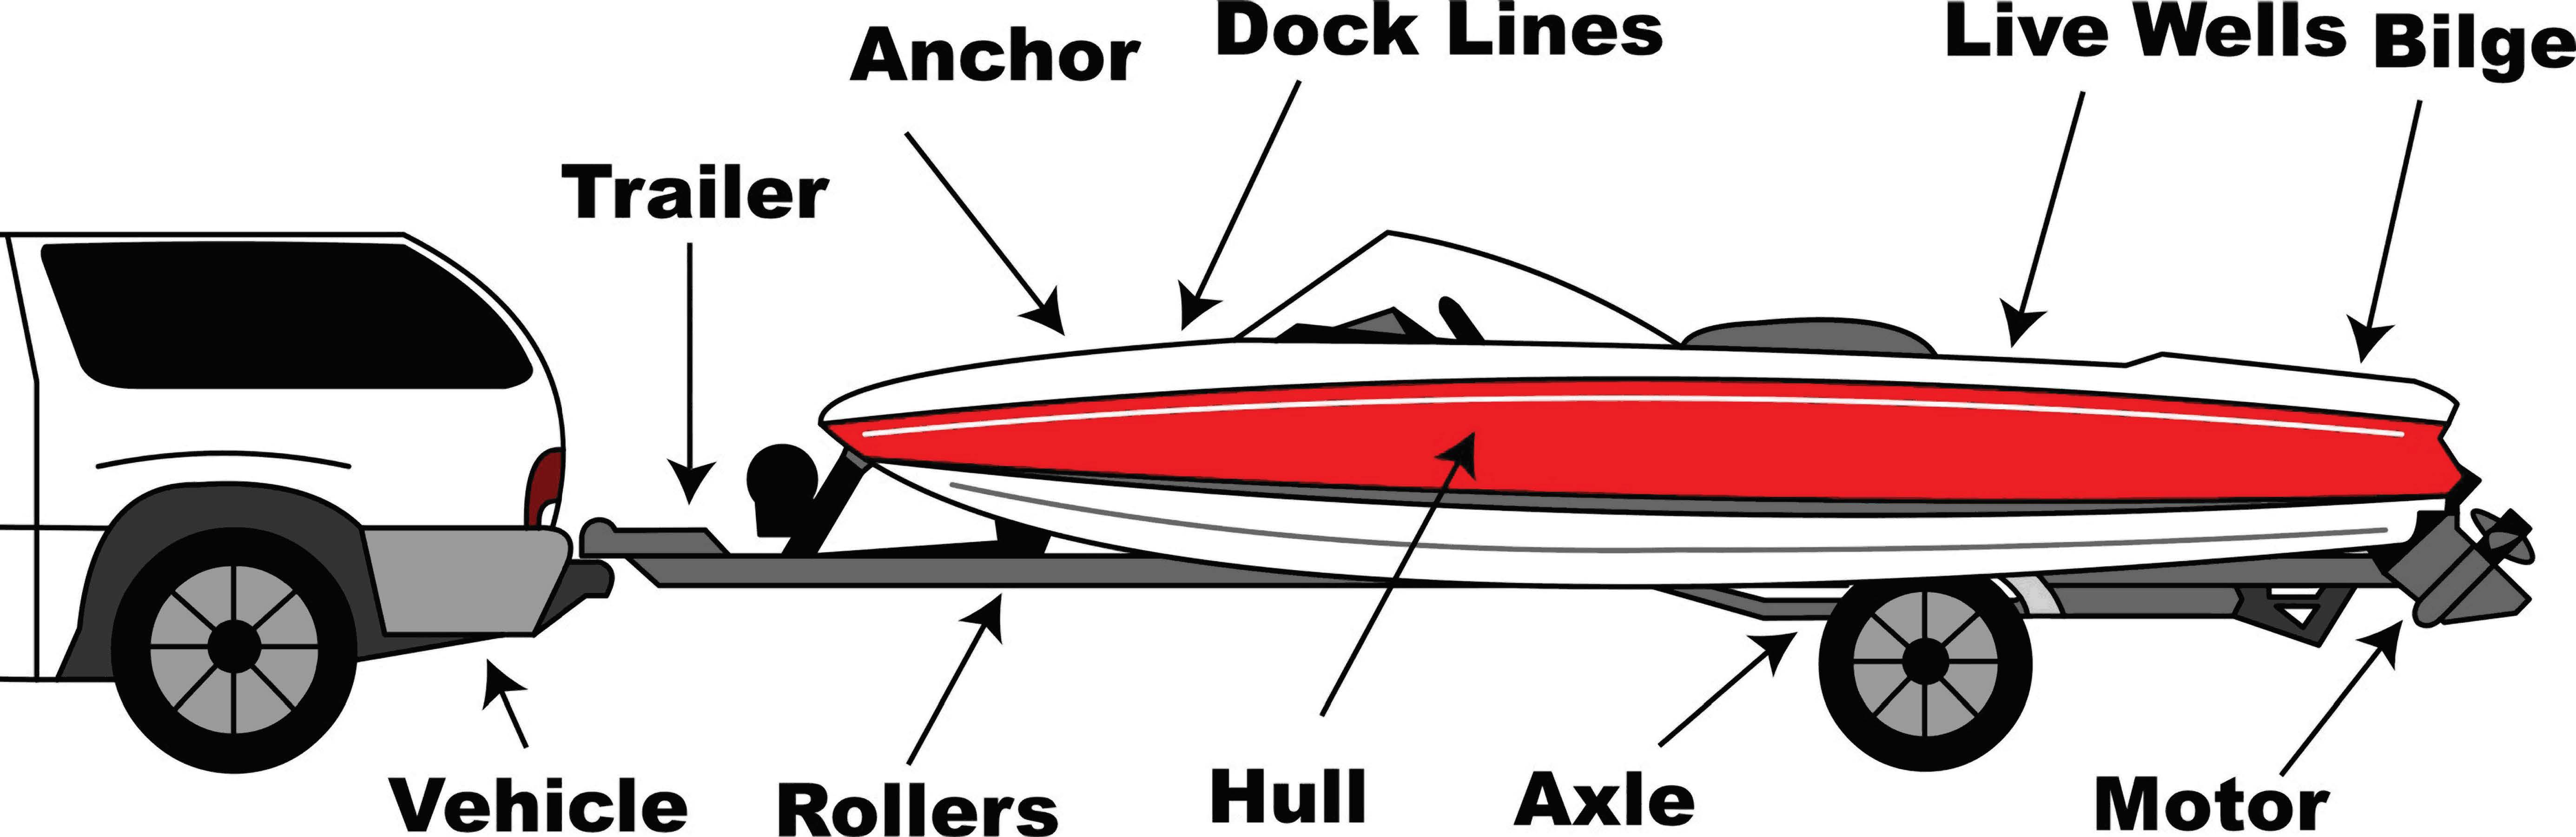 Inspection points on boats for AIS